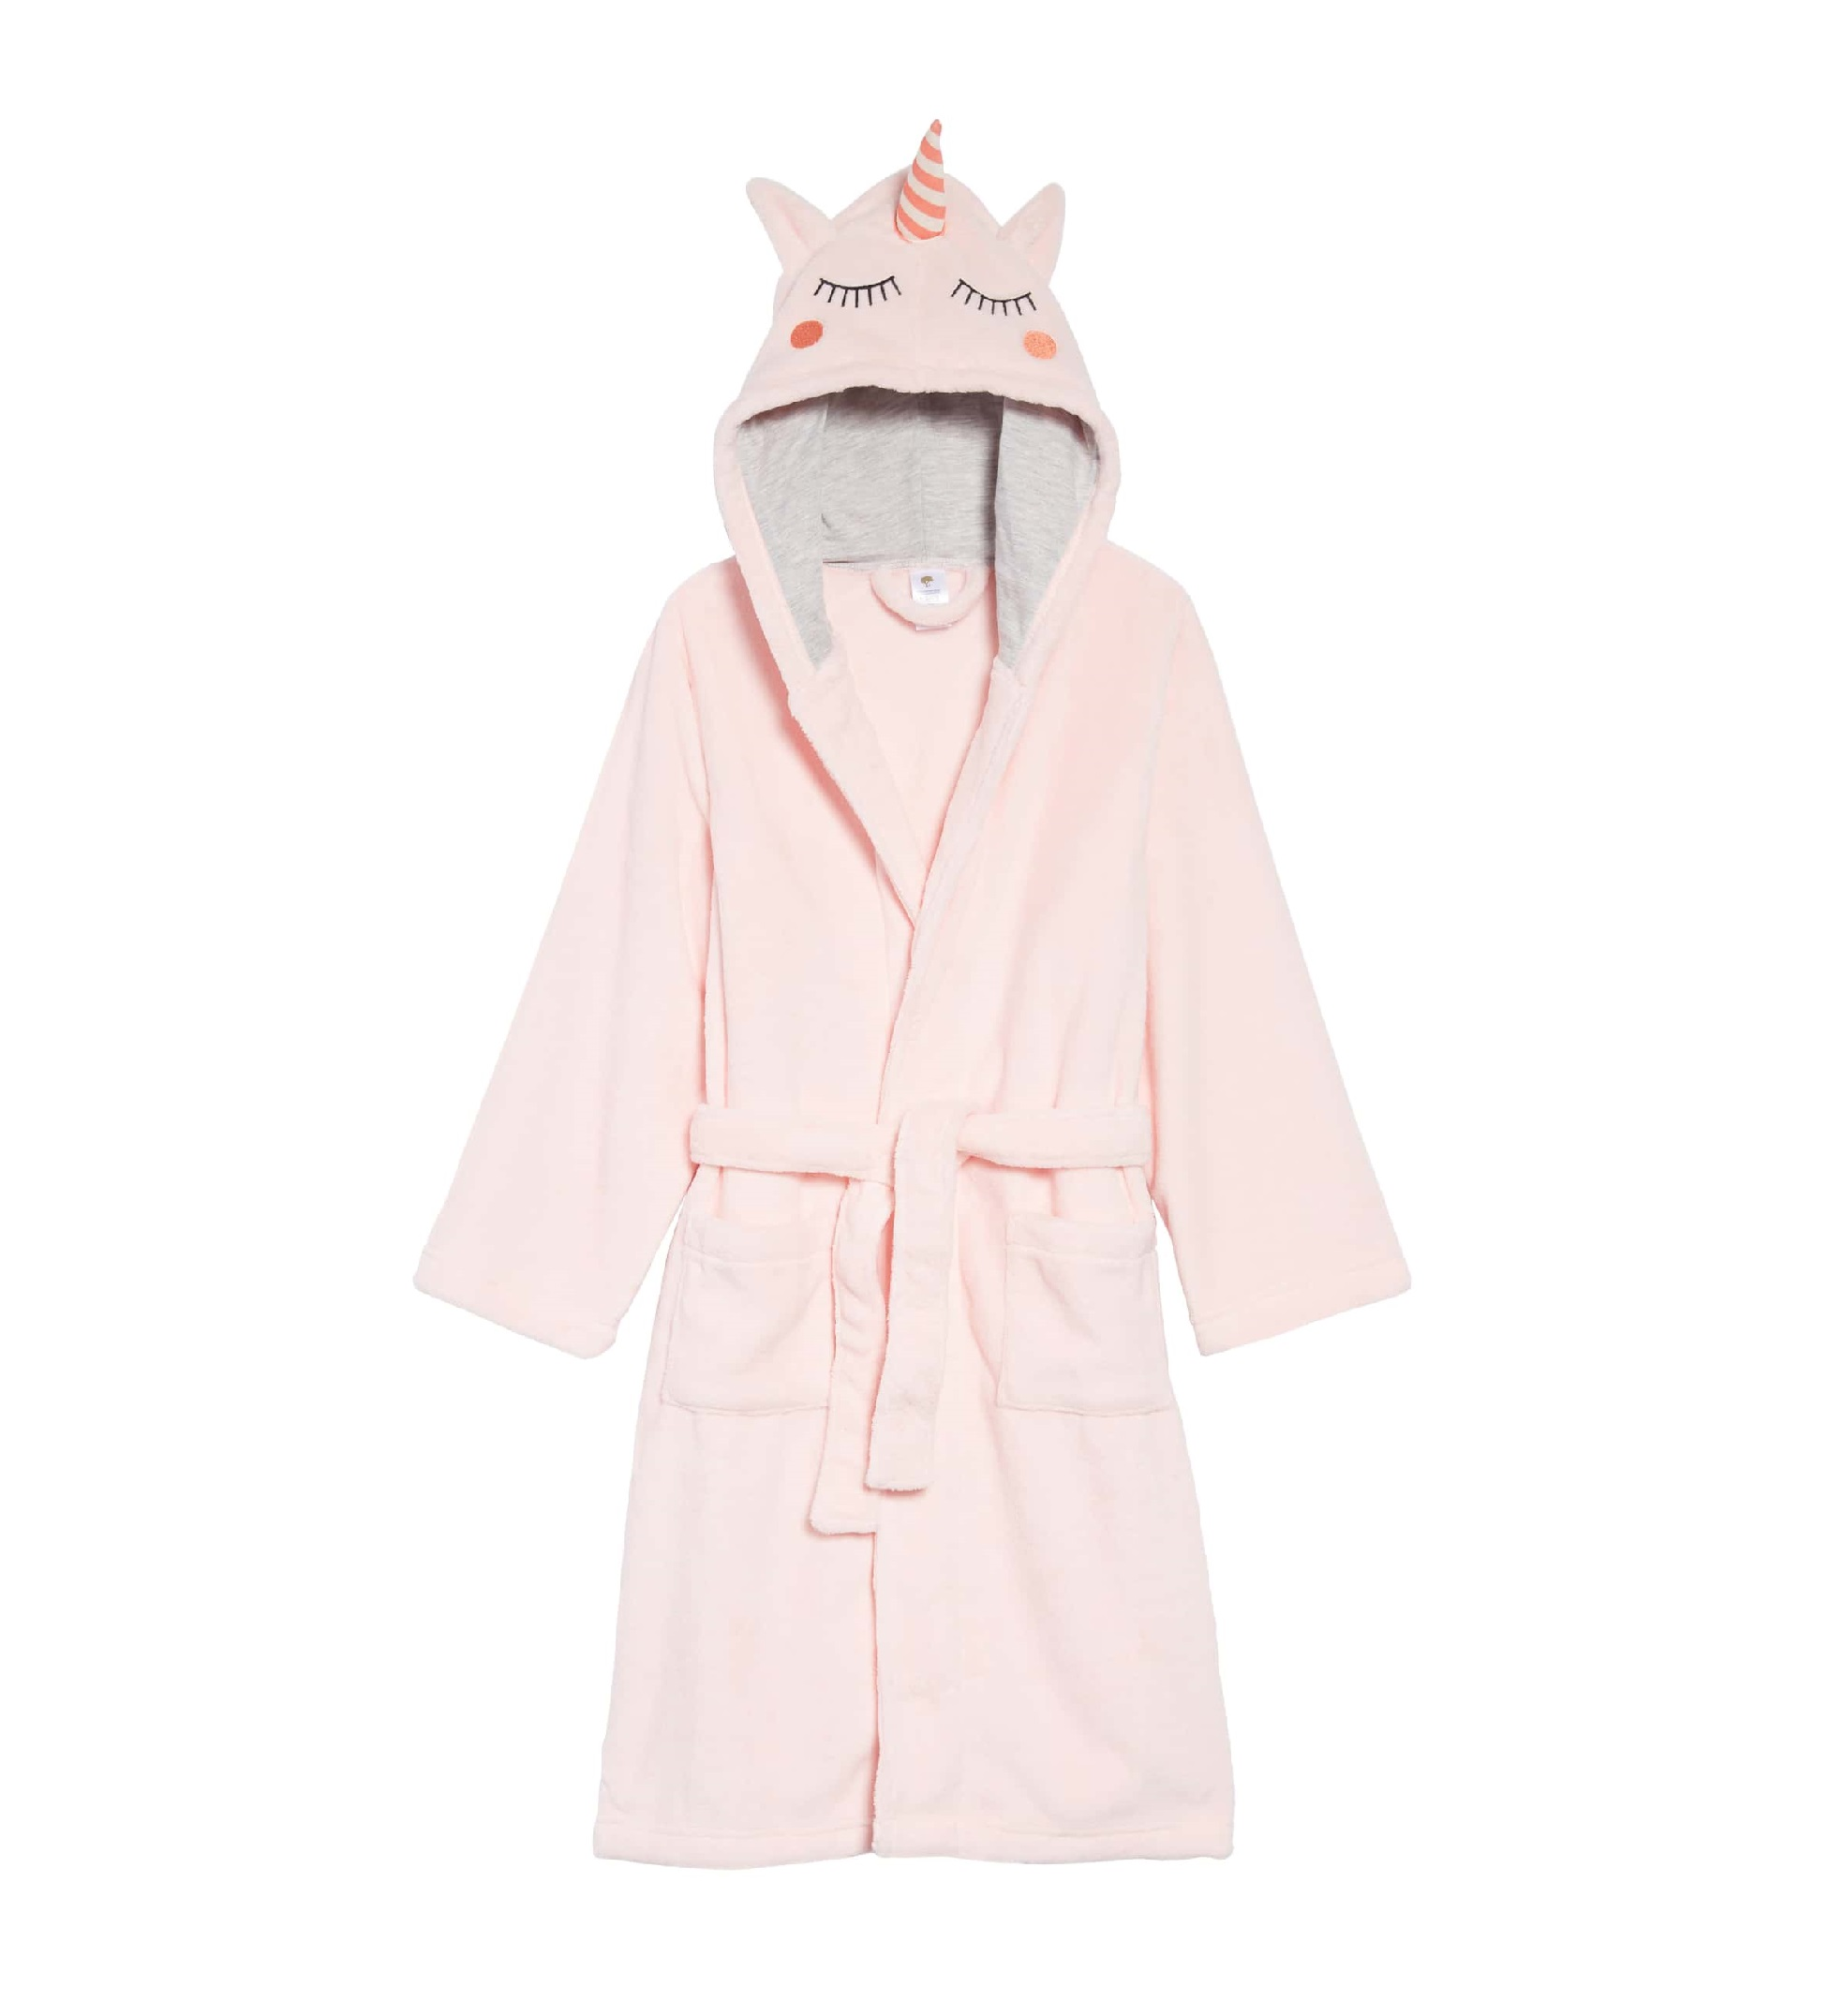 Tucker & Tate unicorn robe